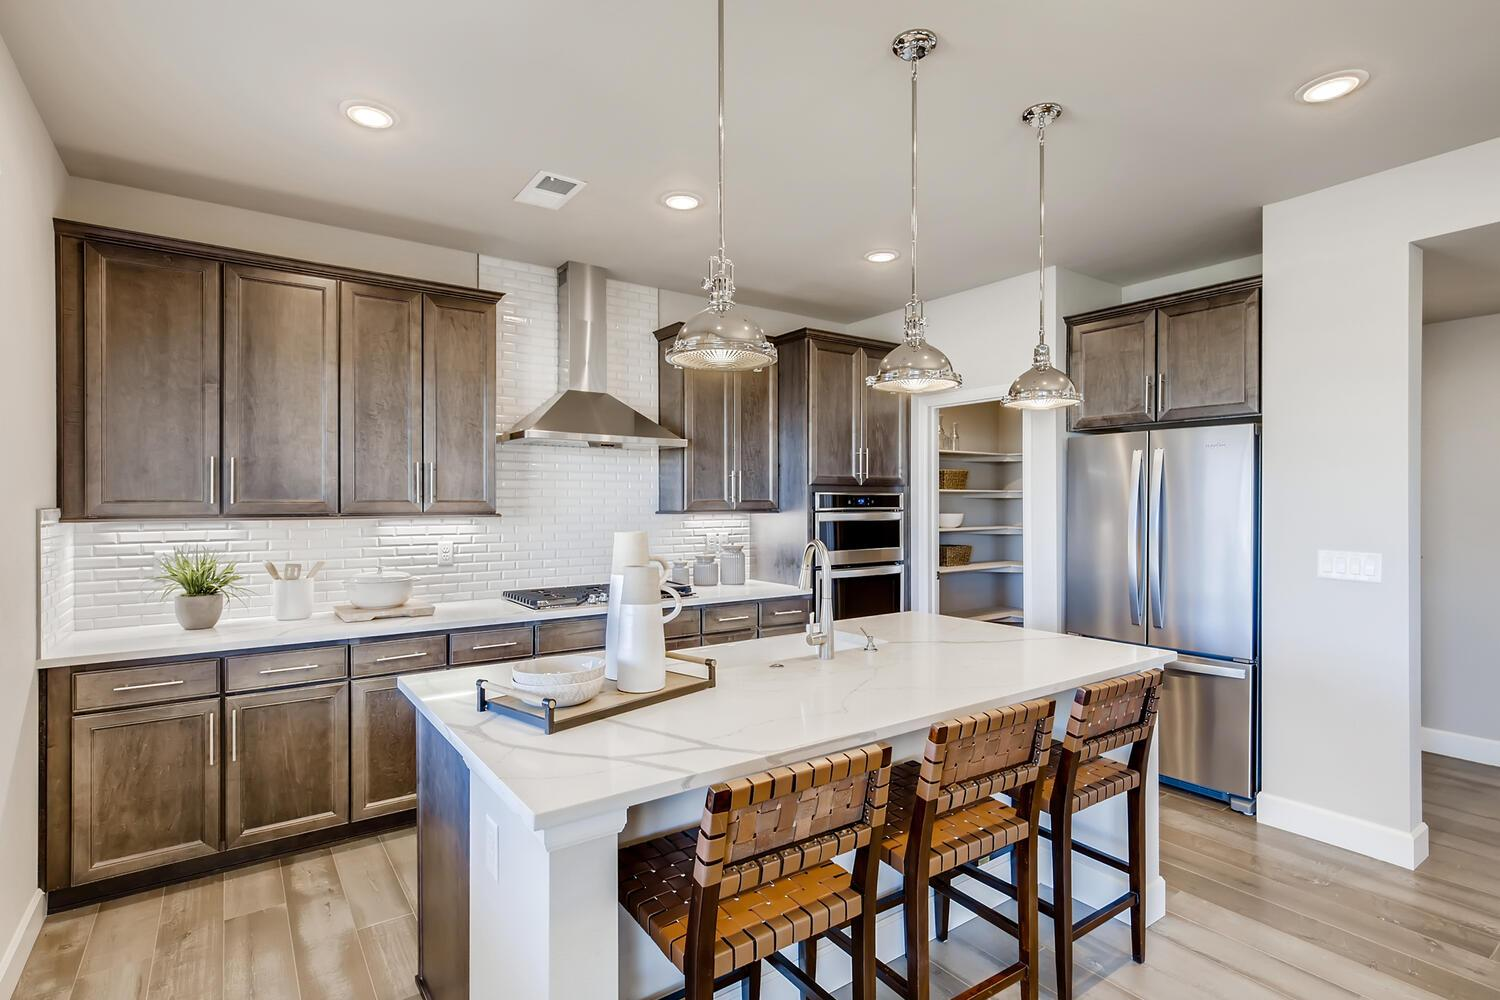 Kitchen featured in the Jansen By RichfieldHomes in Fort Collins-Loveland, CO